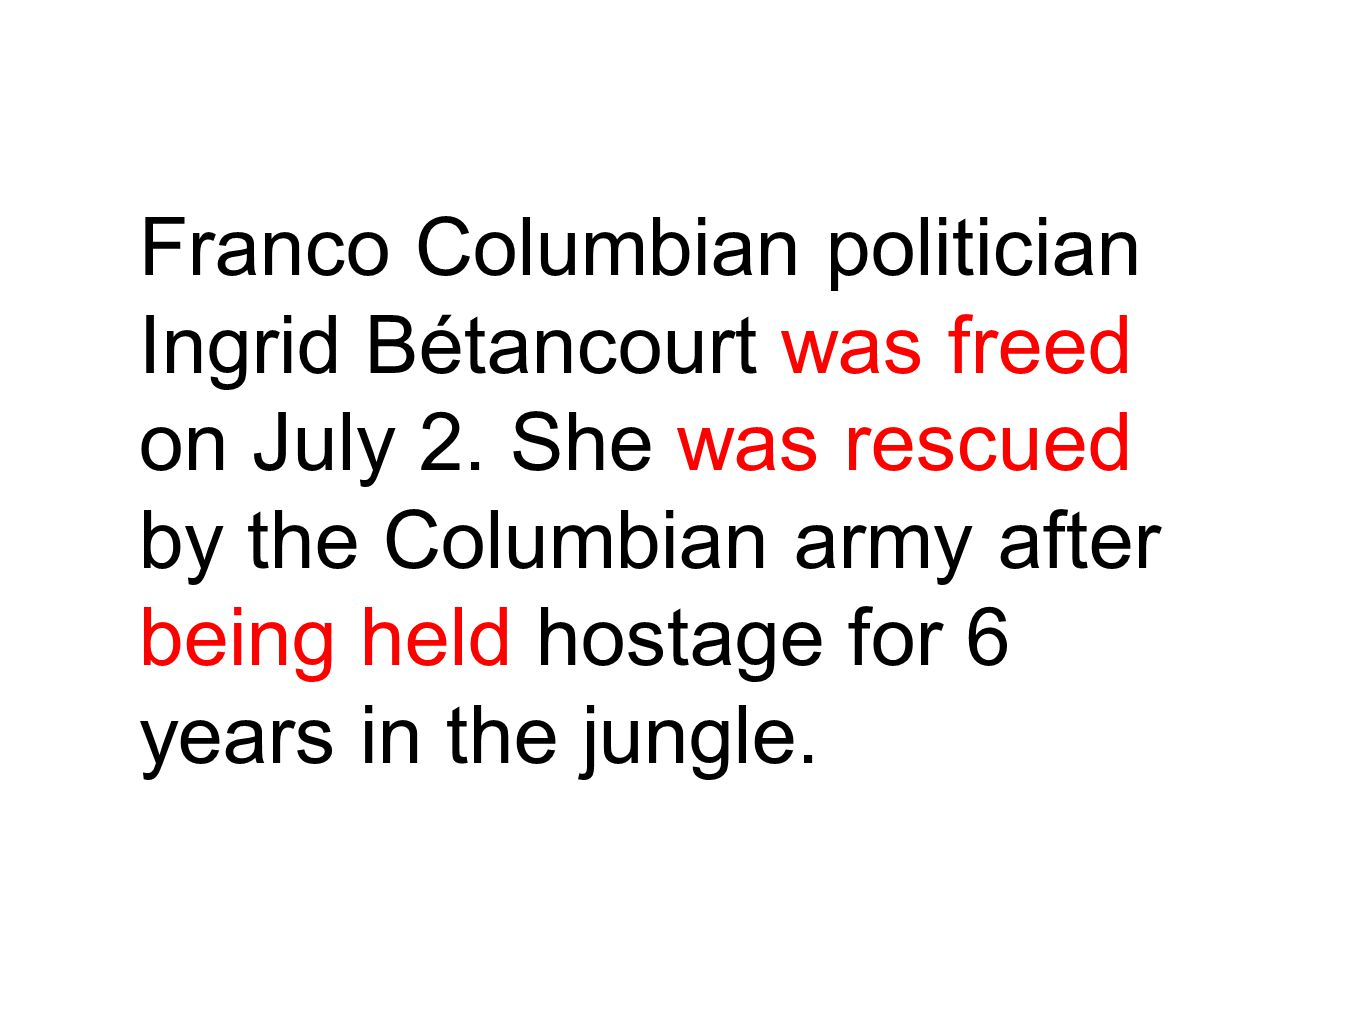 Franco Columbian politician Ingrid Bétancourt was freed on July 2. She was rescued by the Columbian army after being held hostage for 6 years in the j